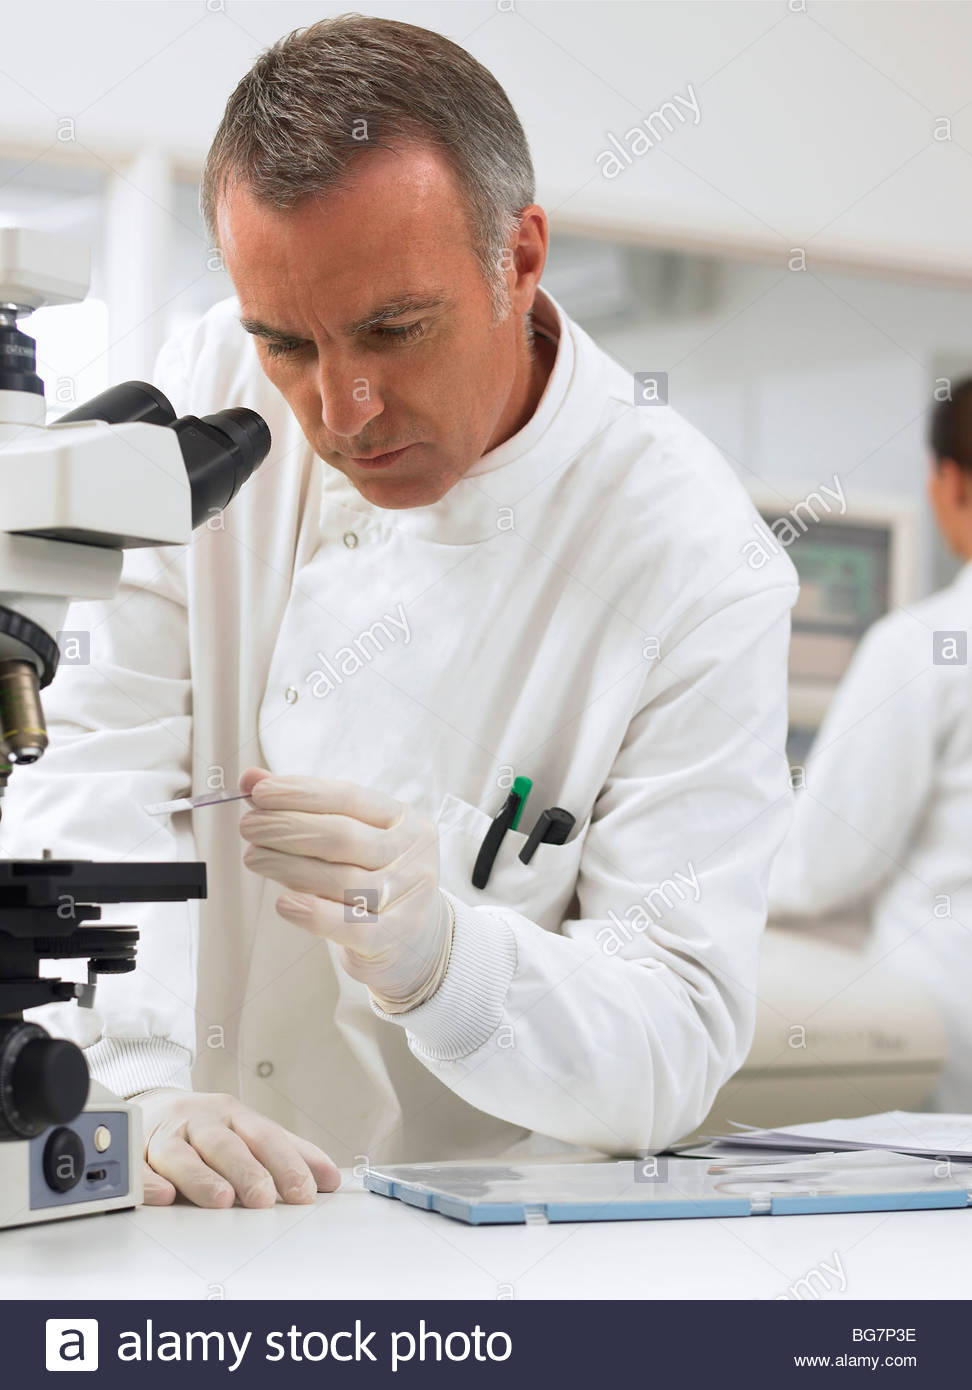 Scientist using microscope in laboratory - Stock Image